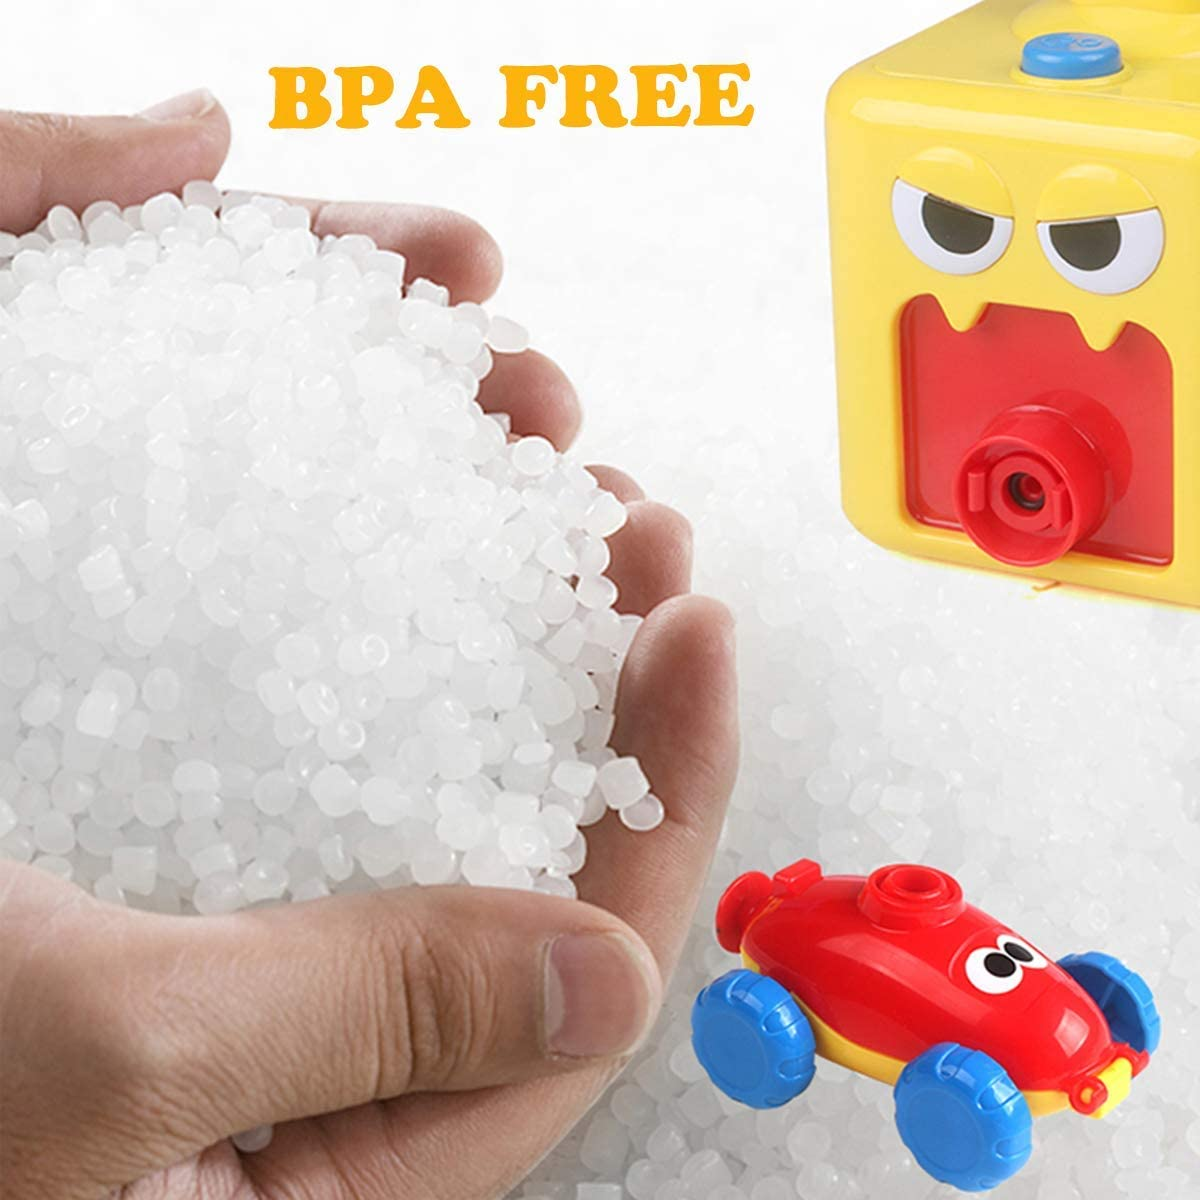 Balloon Powered Car Toy for Kids Inflatable Balloon Pump Cars Racer Kit for Boy